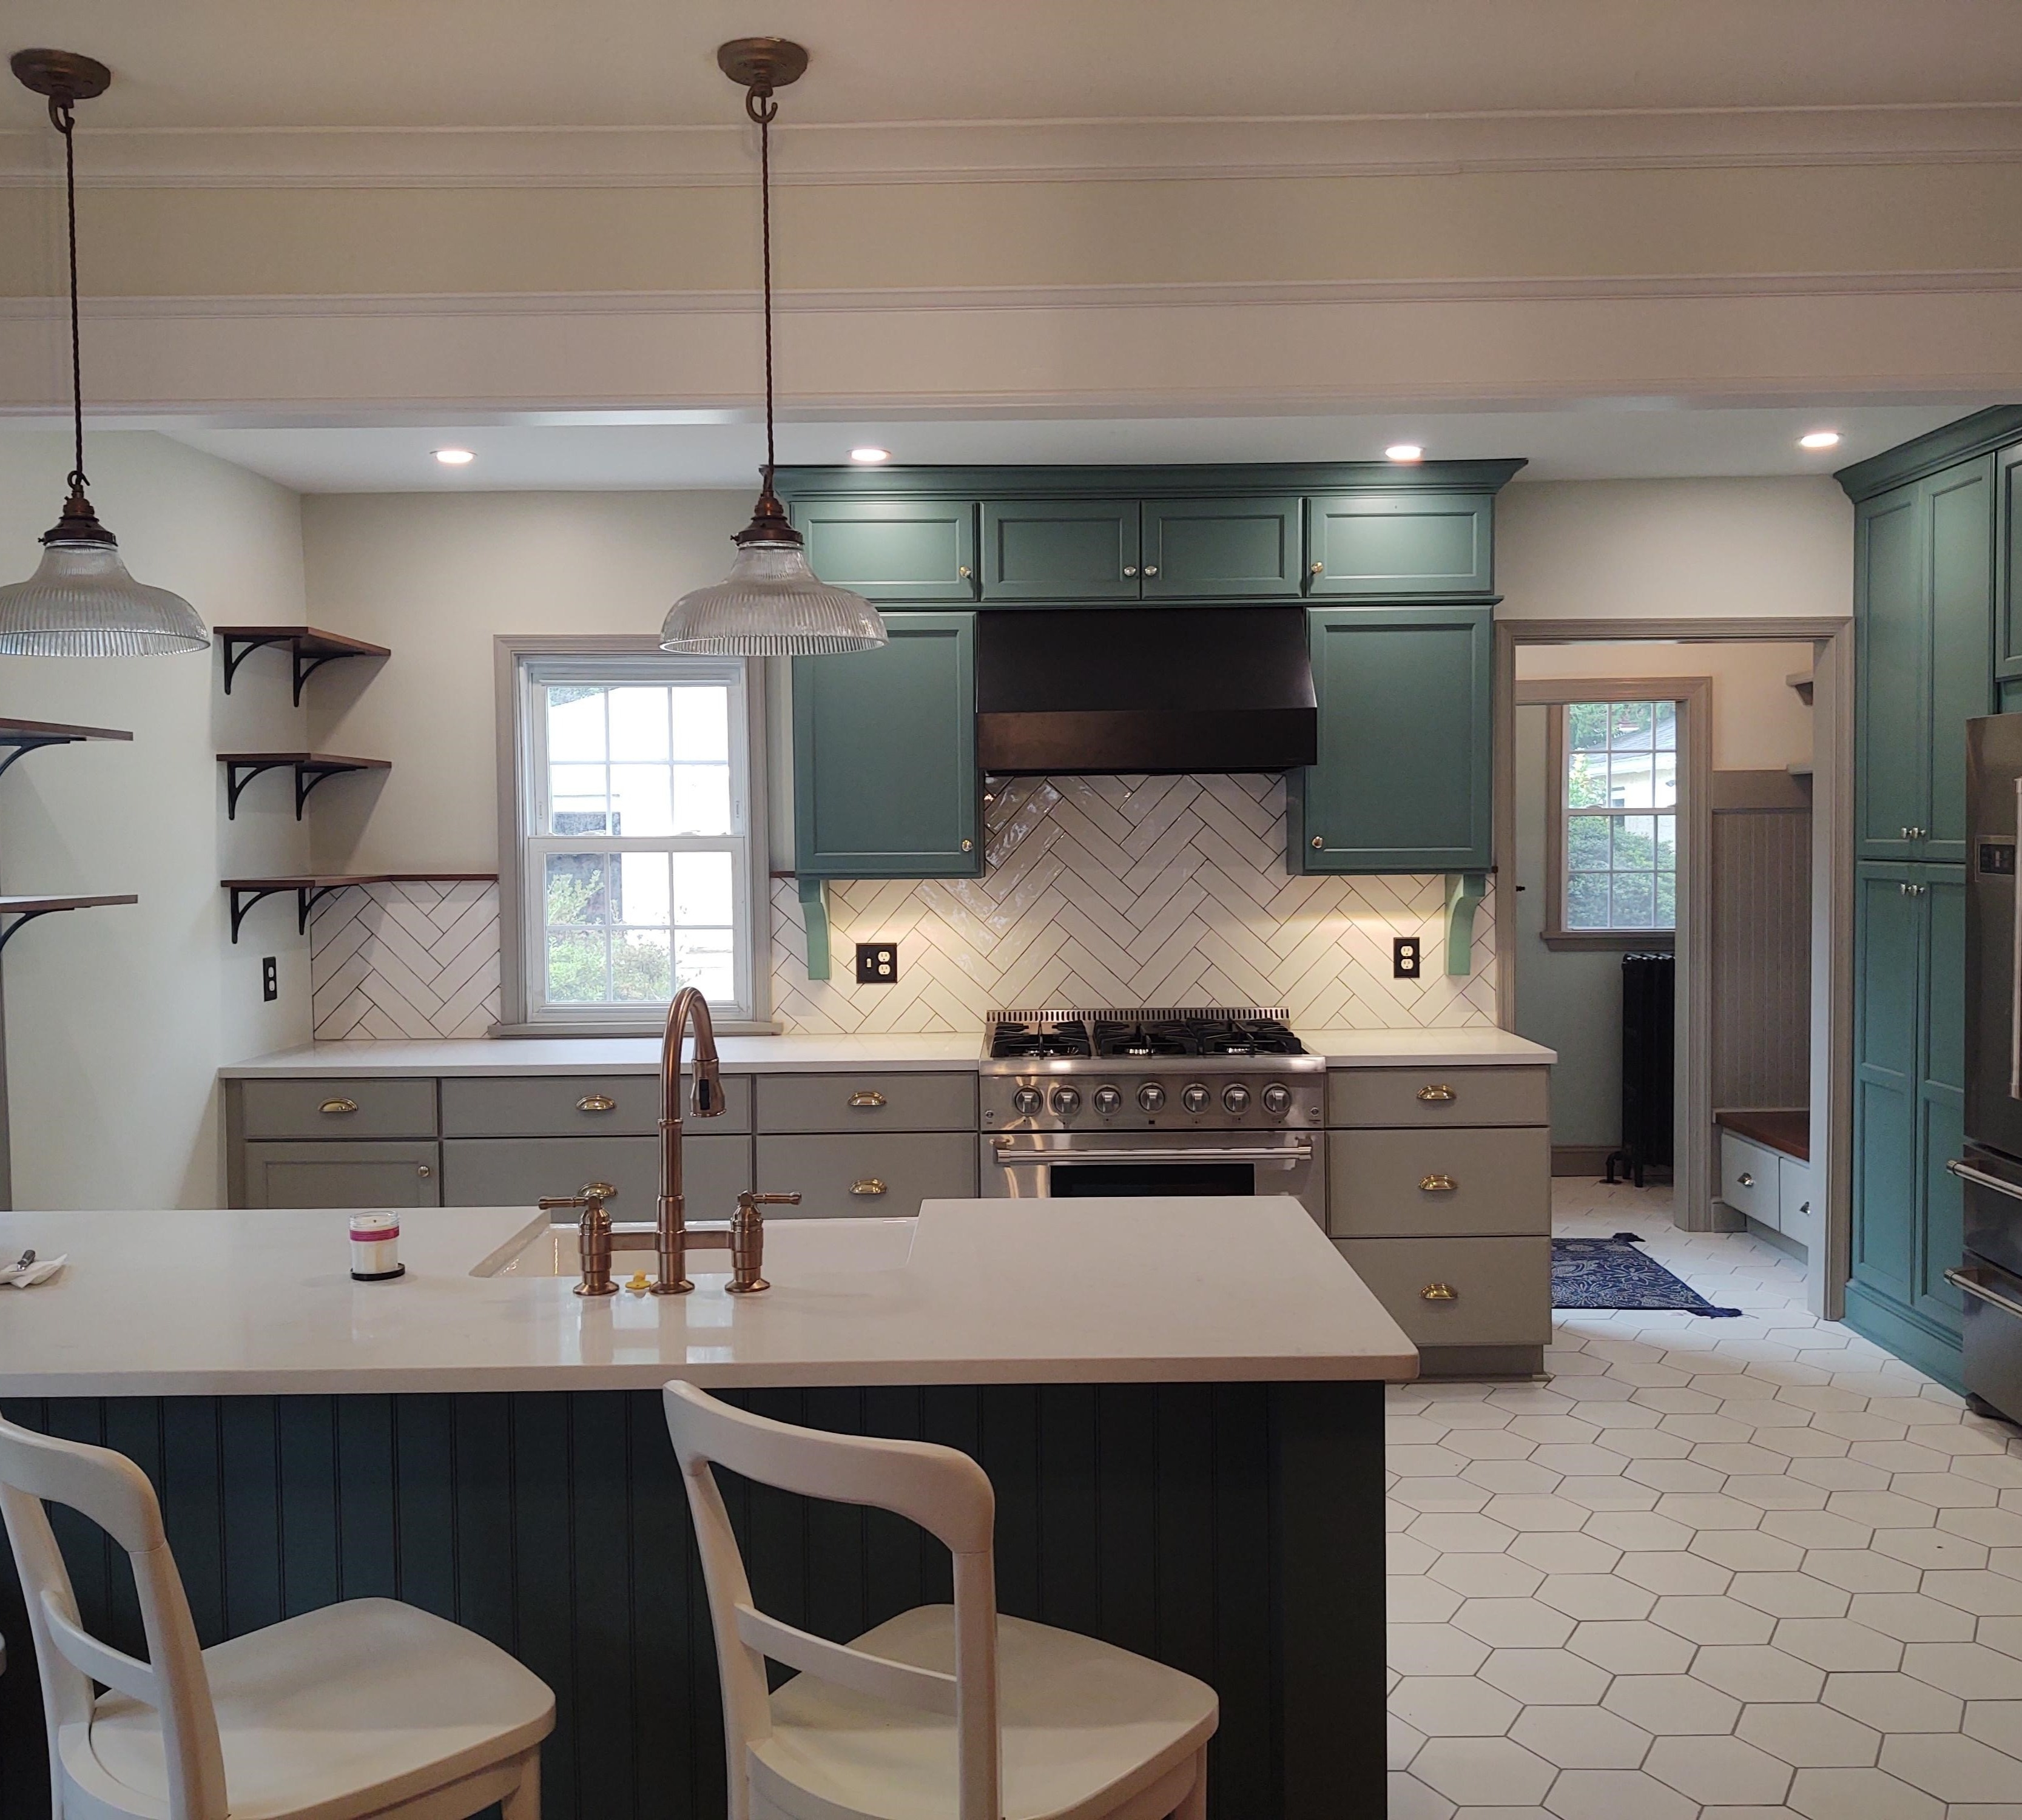 Ardmore PA Kitchen Design and Remodel